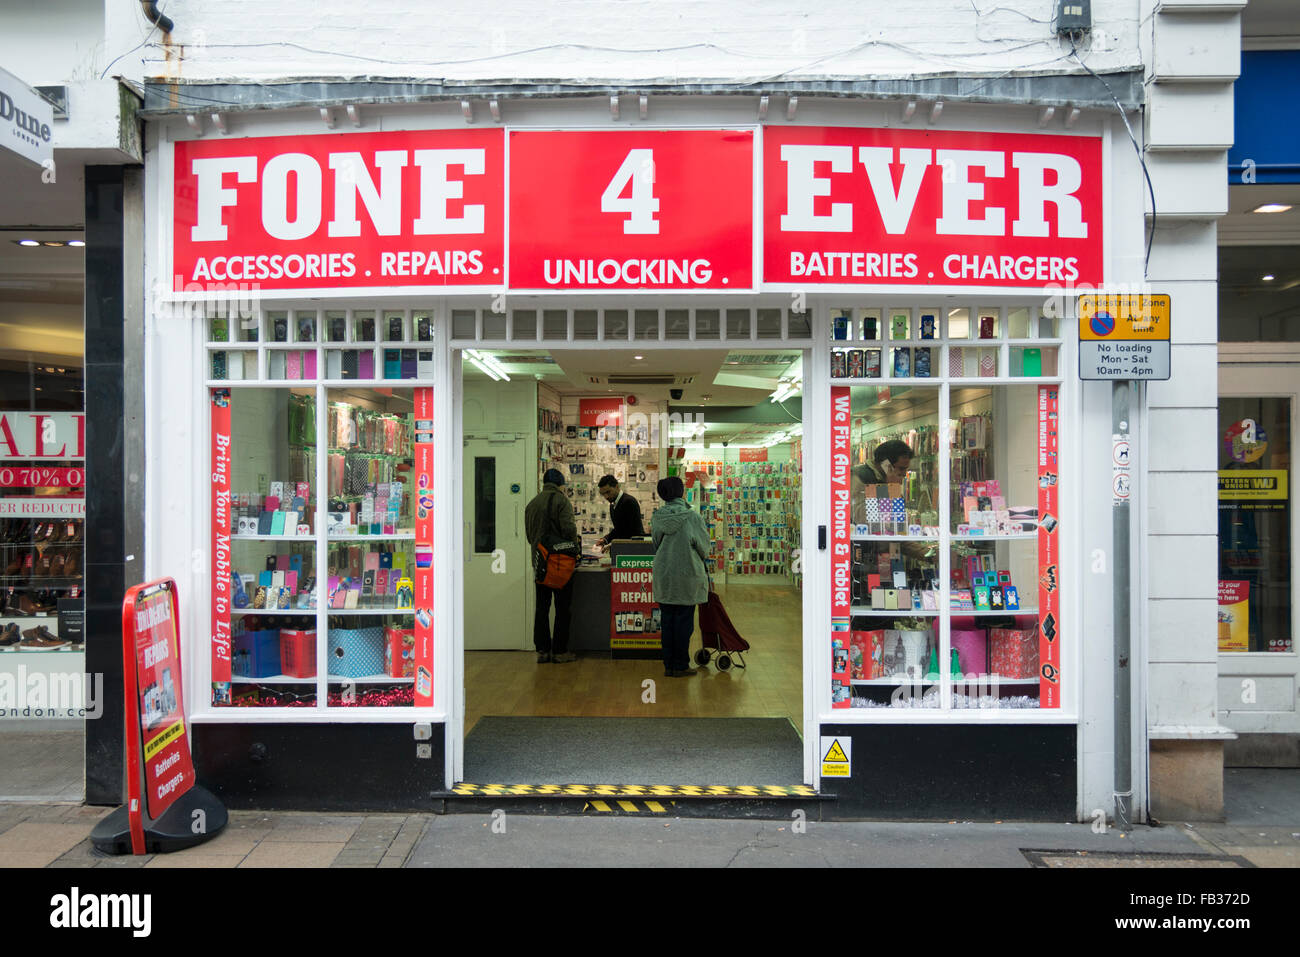 The Fone 4 Ever mobile phone shop in Cambridge UK - Stock Image